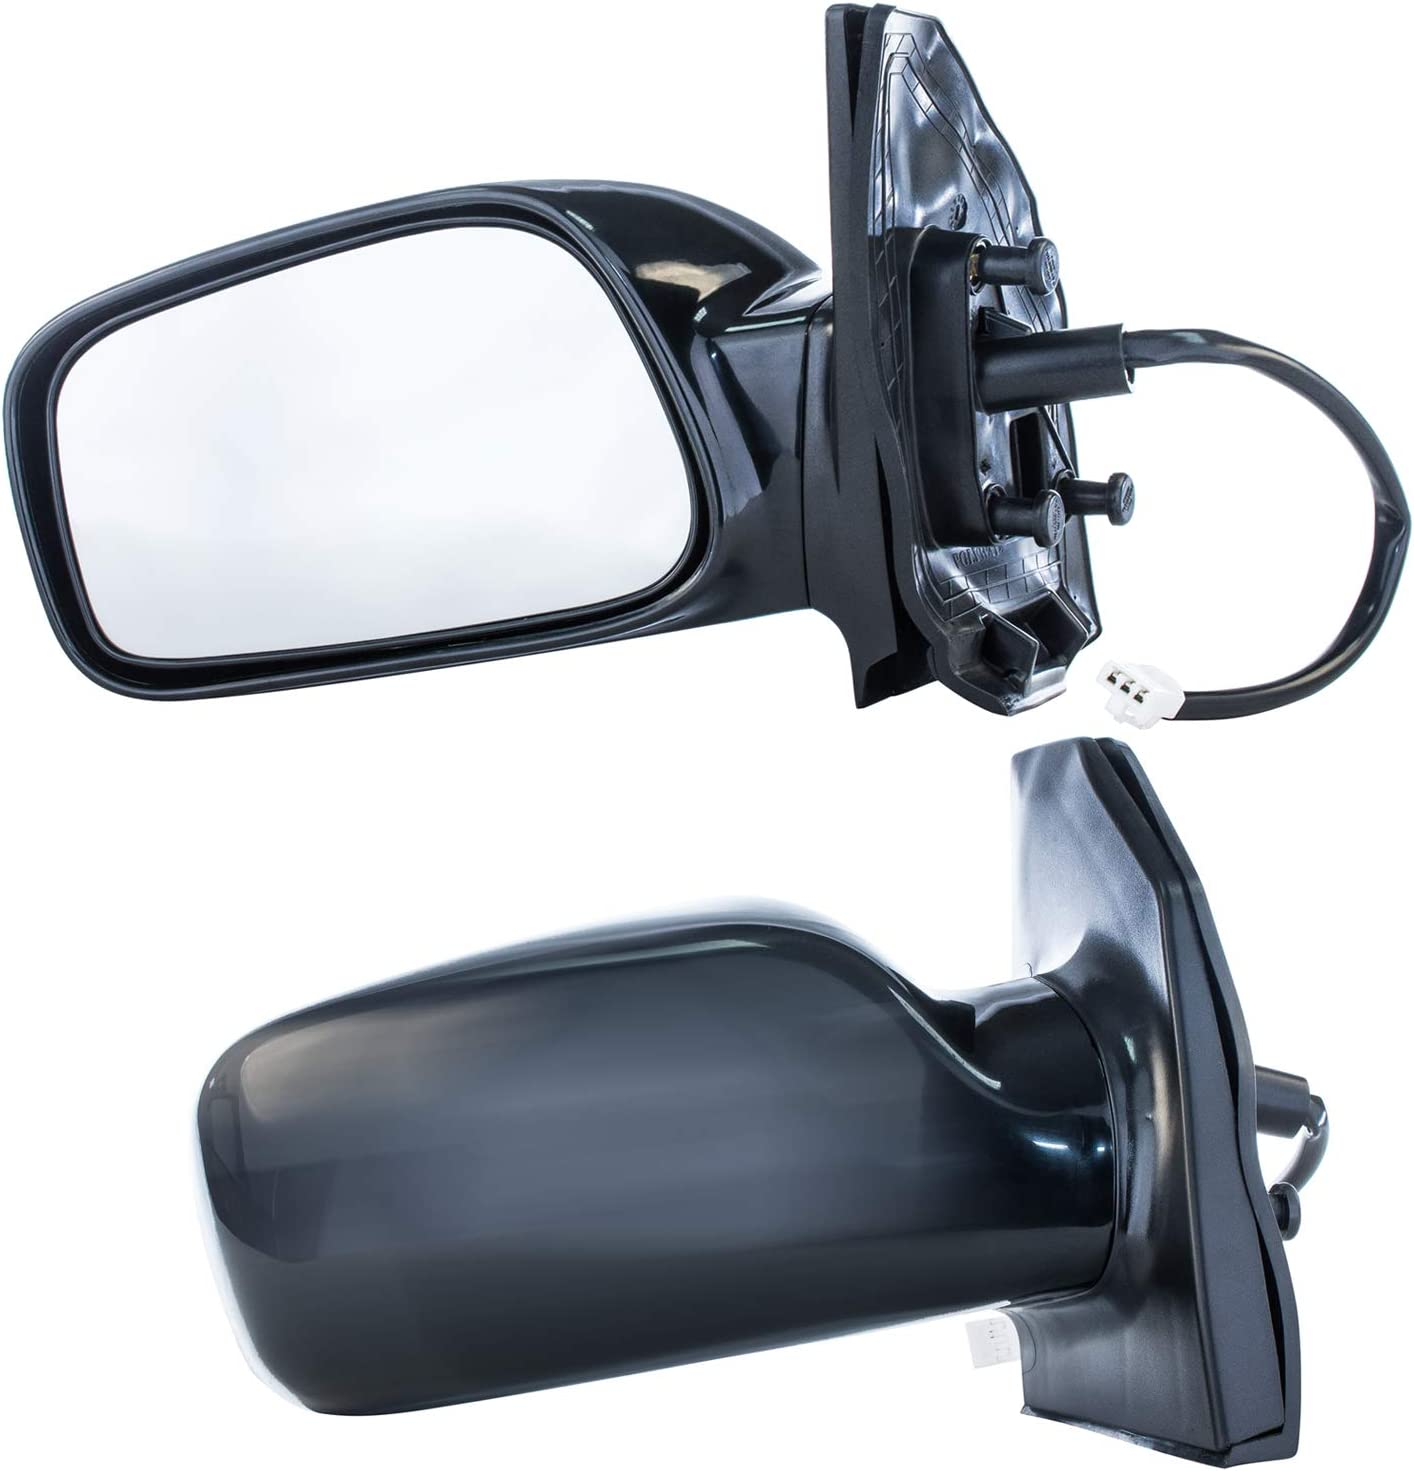 TUPARTS Fit for 2003-2008 Toyota Corolla with Power Adjustment Non-Folding Side View Mirror Right Side Mirror